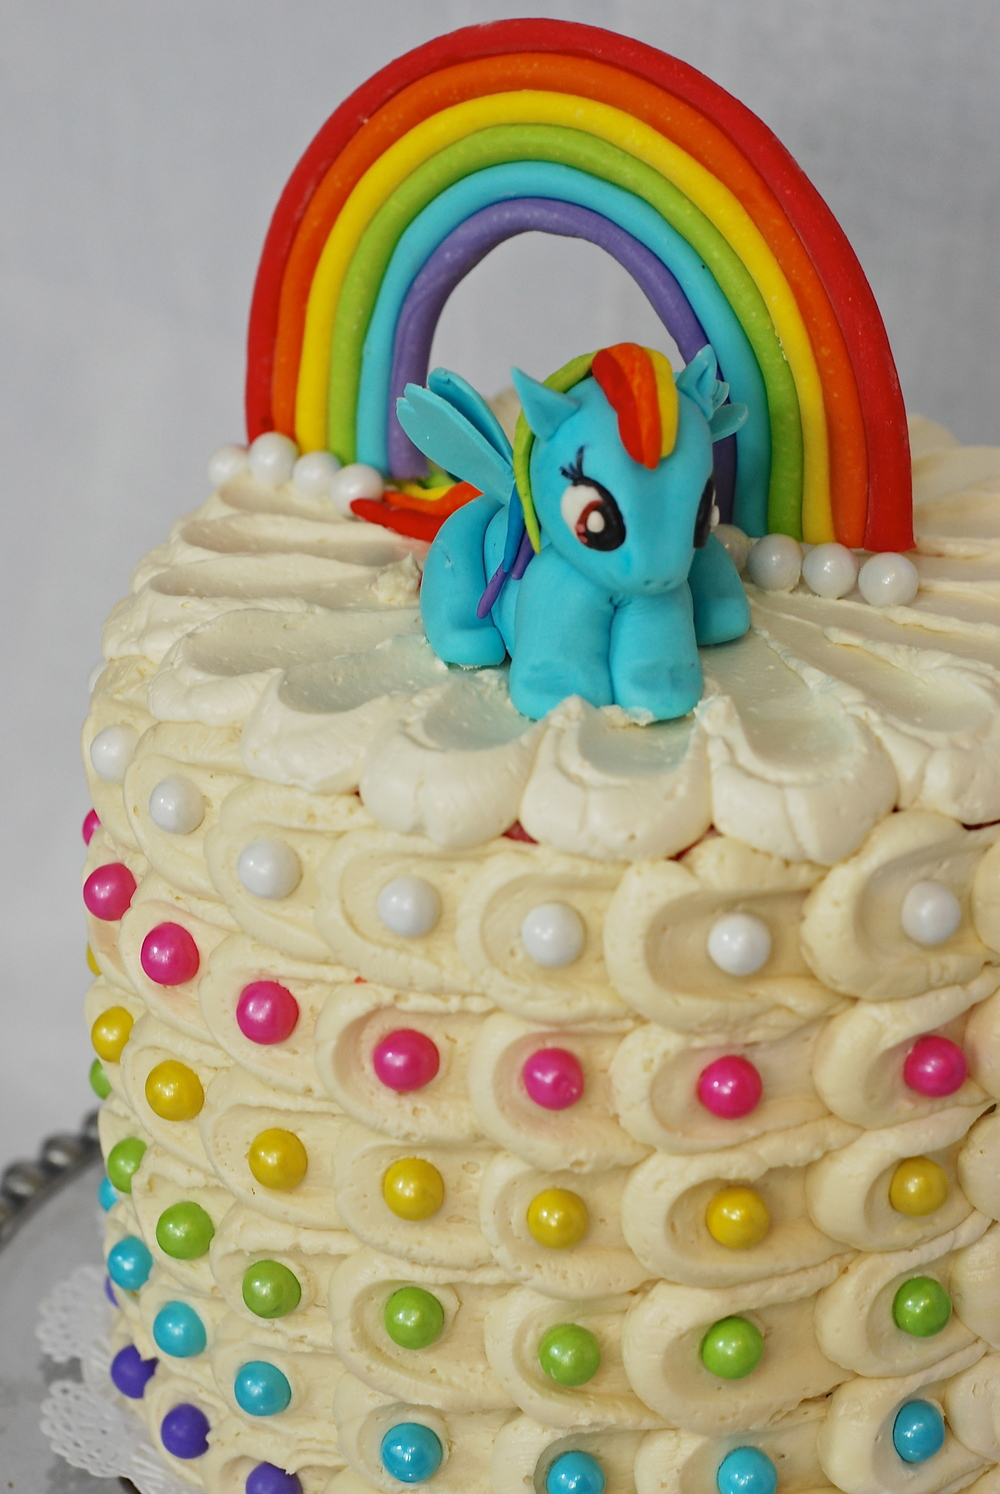 Rainbow Sixlet covered Sweet Vanilla Cake.  Inside, each layer is a different color of the rainbow!